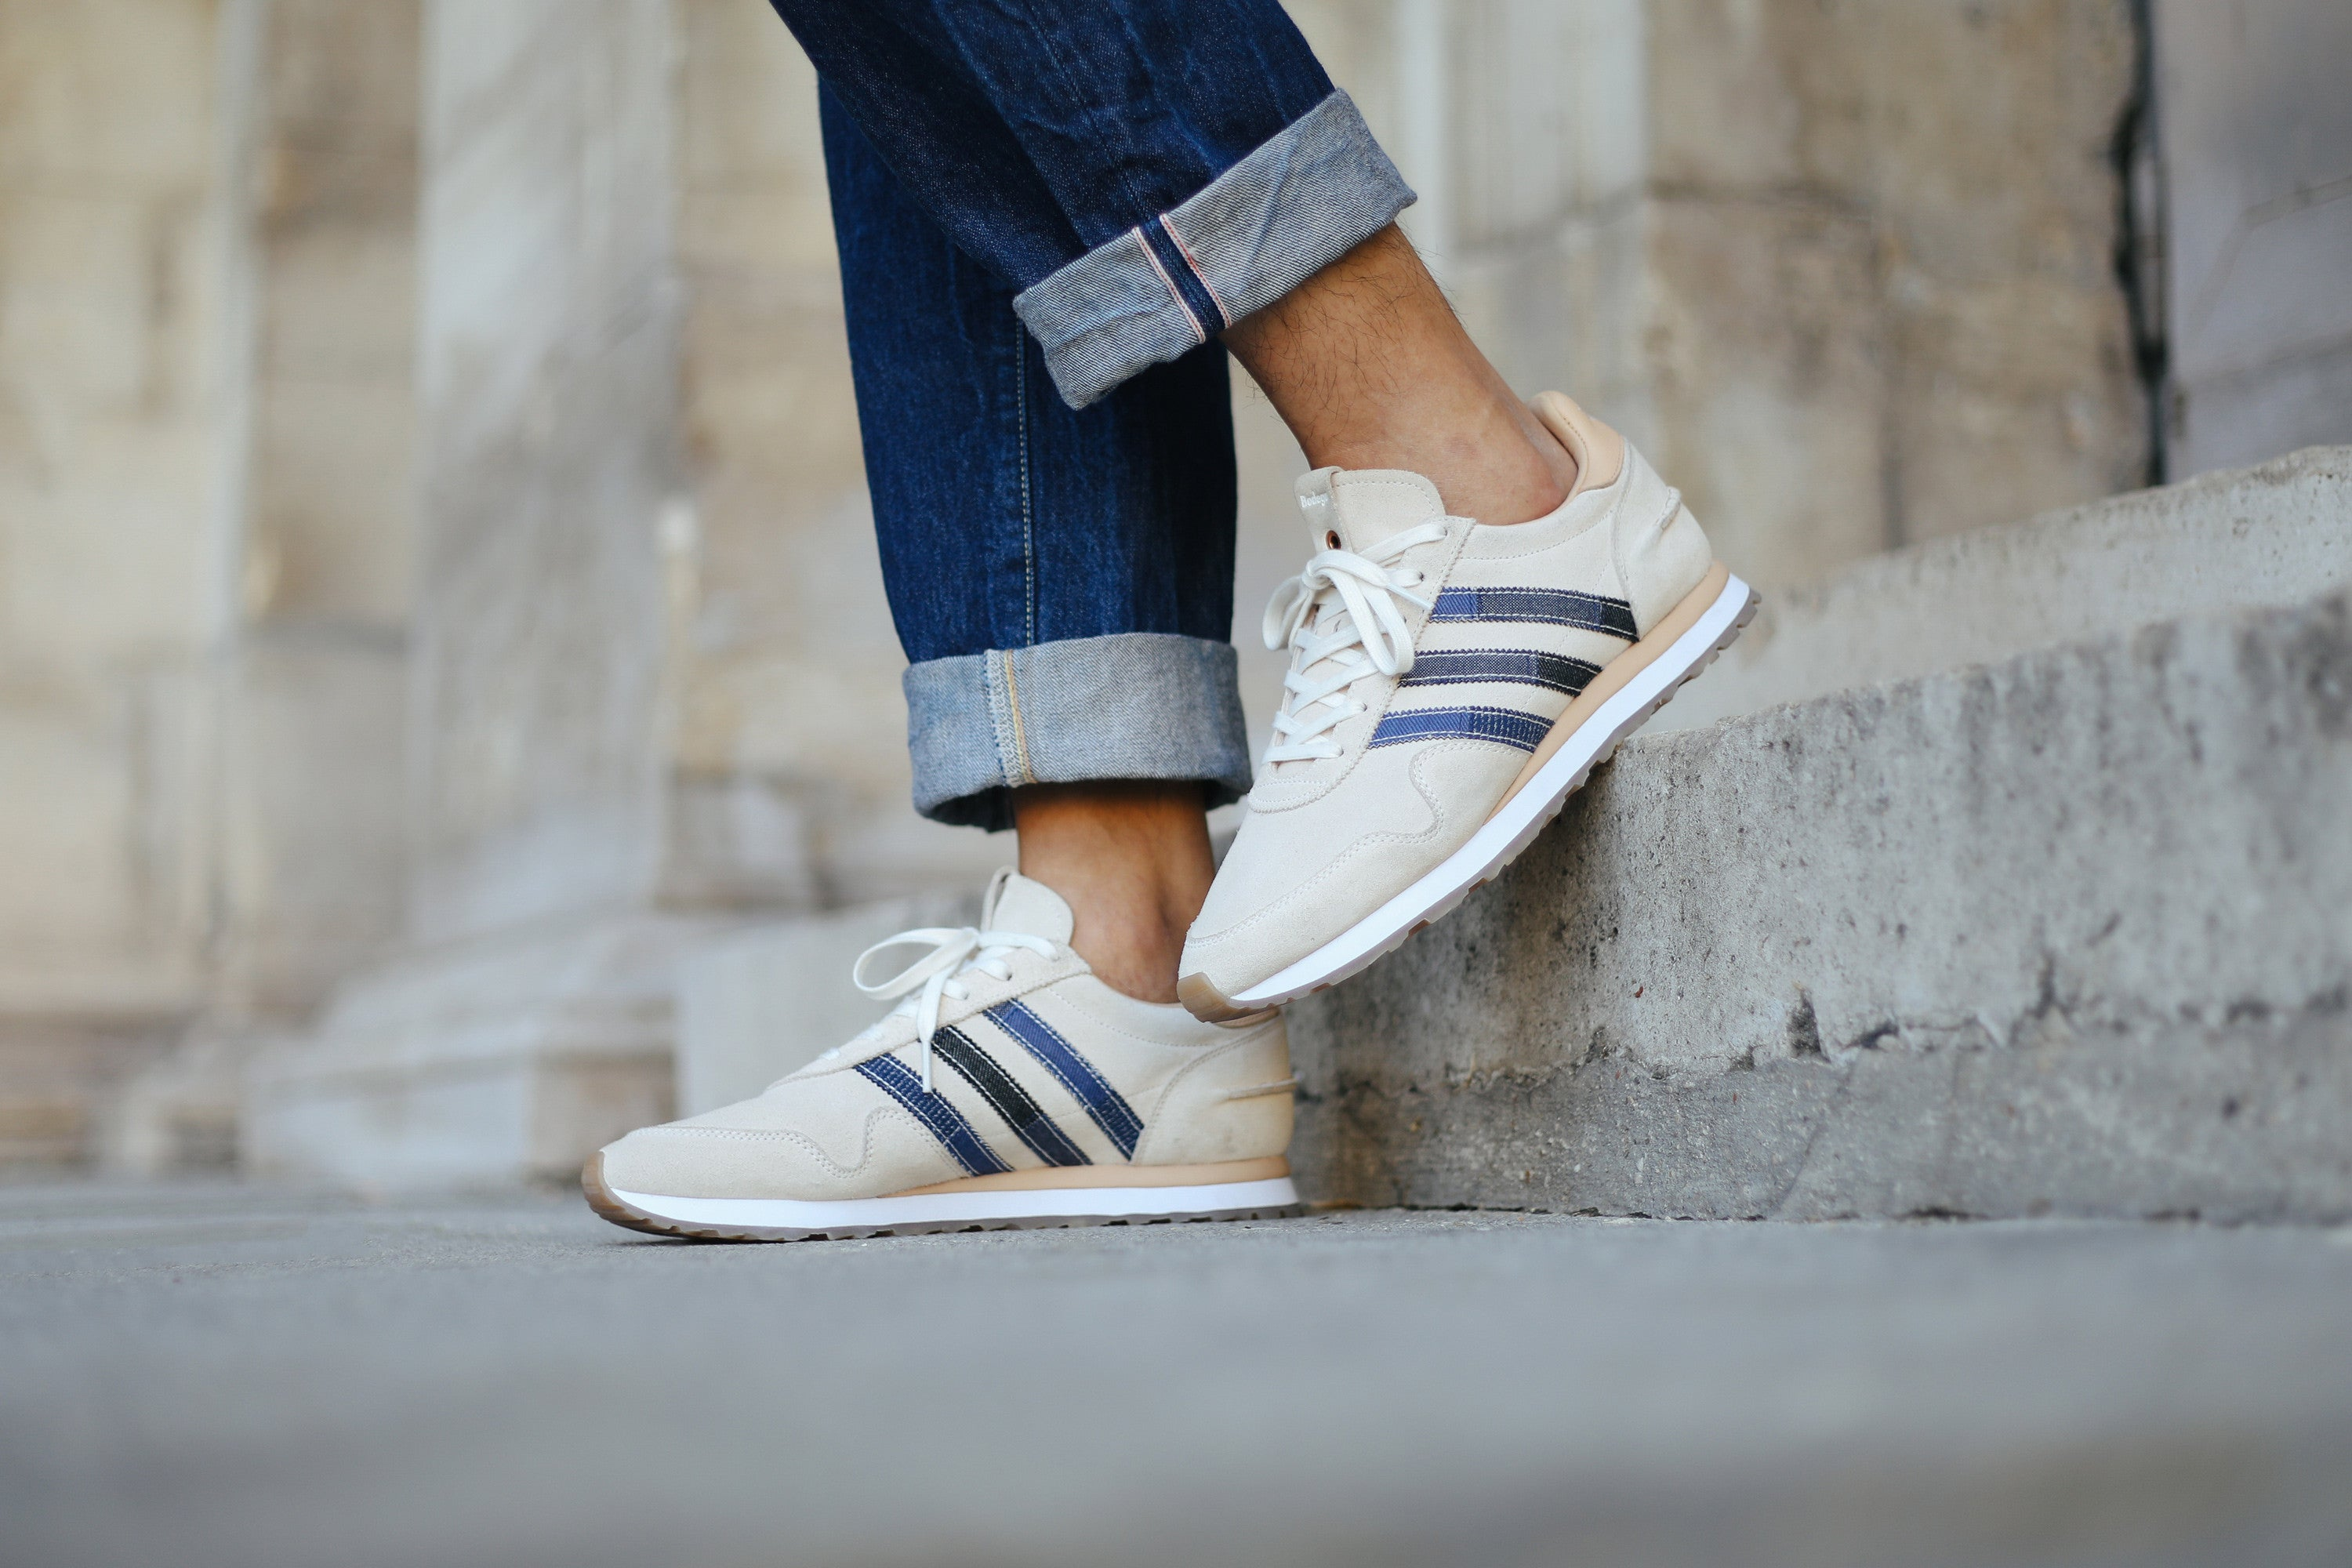 Bodega x END. x Adidas Iniki Runner SE Multicolor BY2104 Retail: $180 [in  sizes 5-14 US]